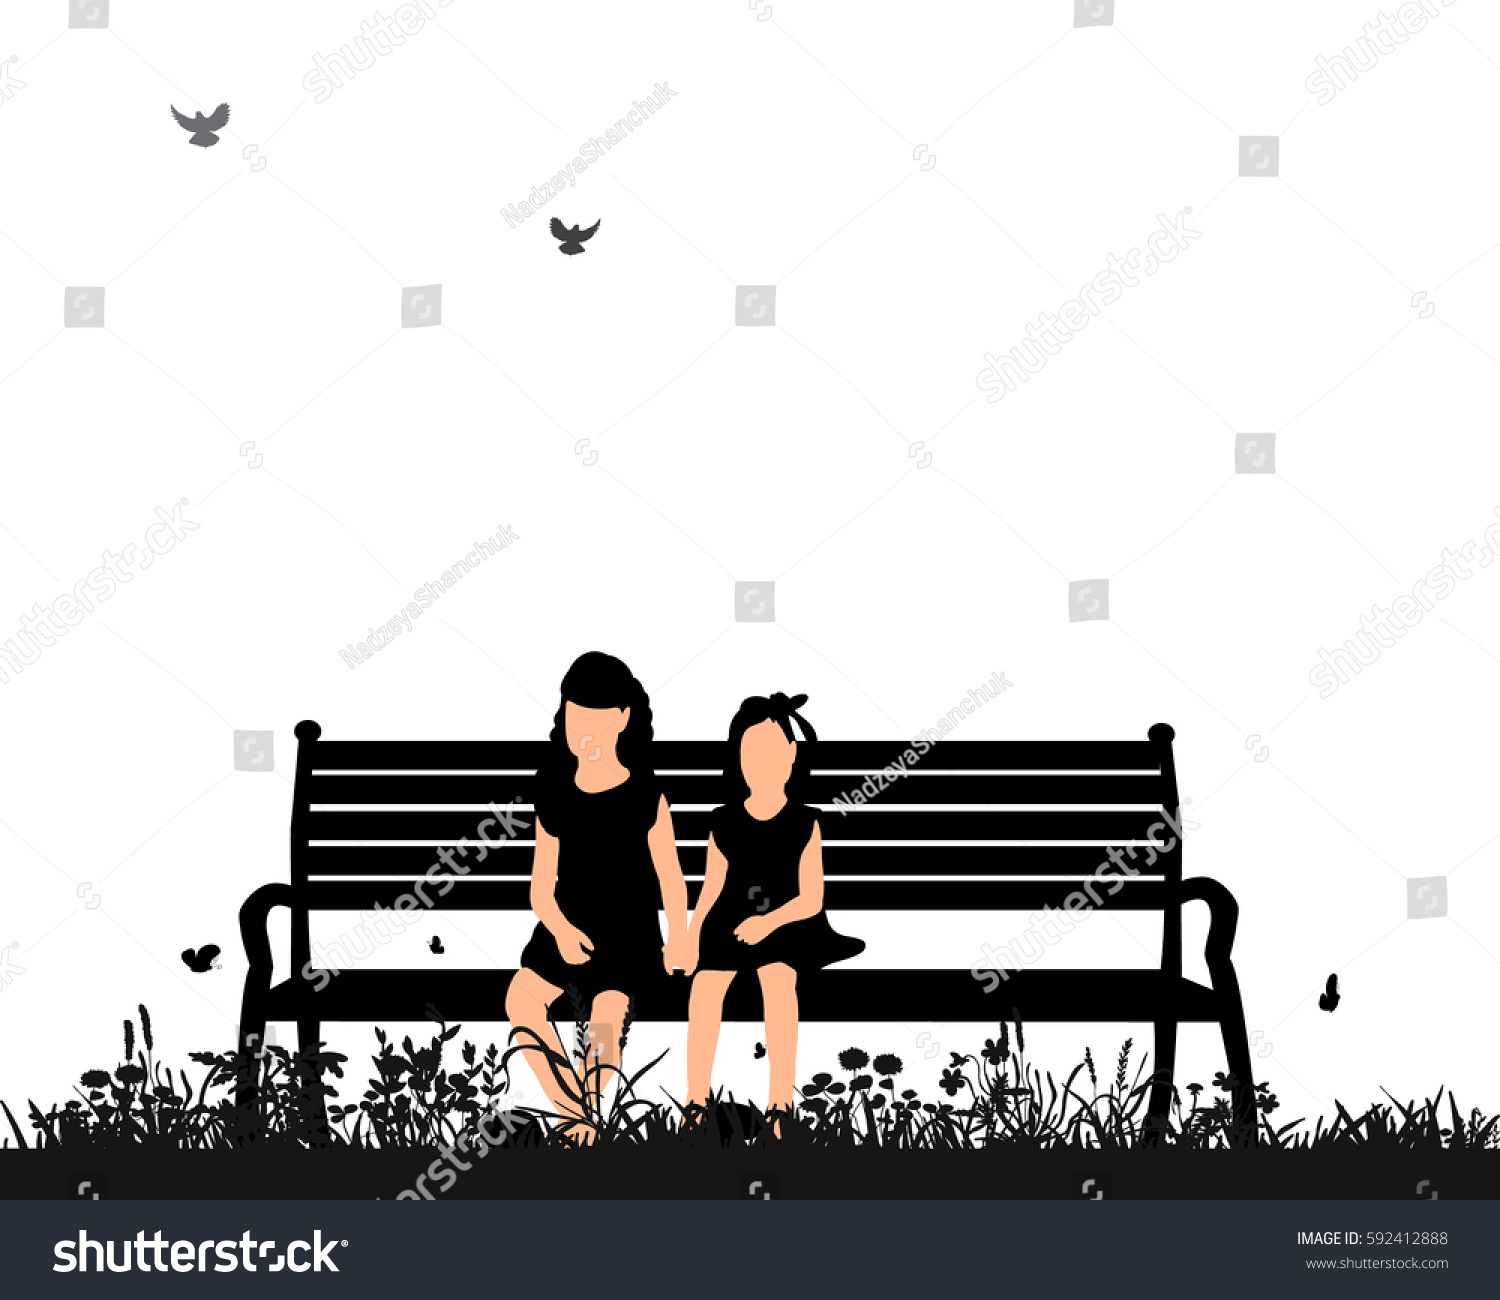 Vector Isolated Silhouette Children Sitting On Stock Vector ... for Bench Silhouette Side  303mzq